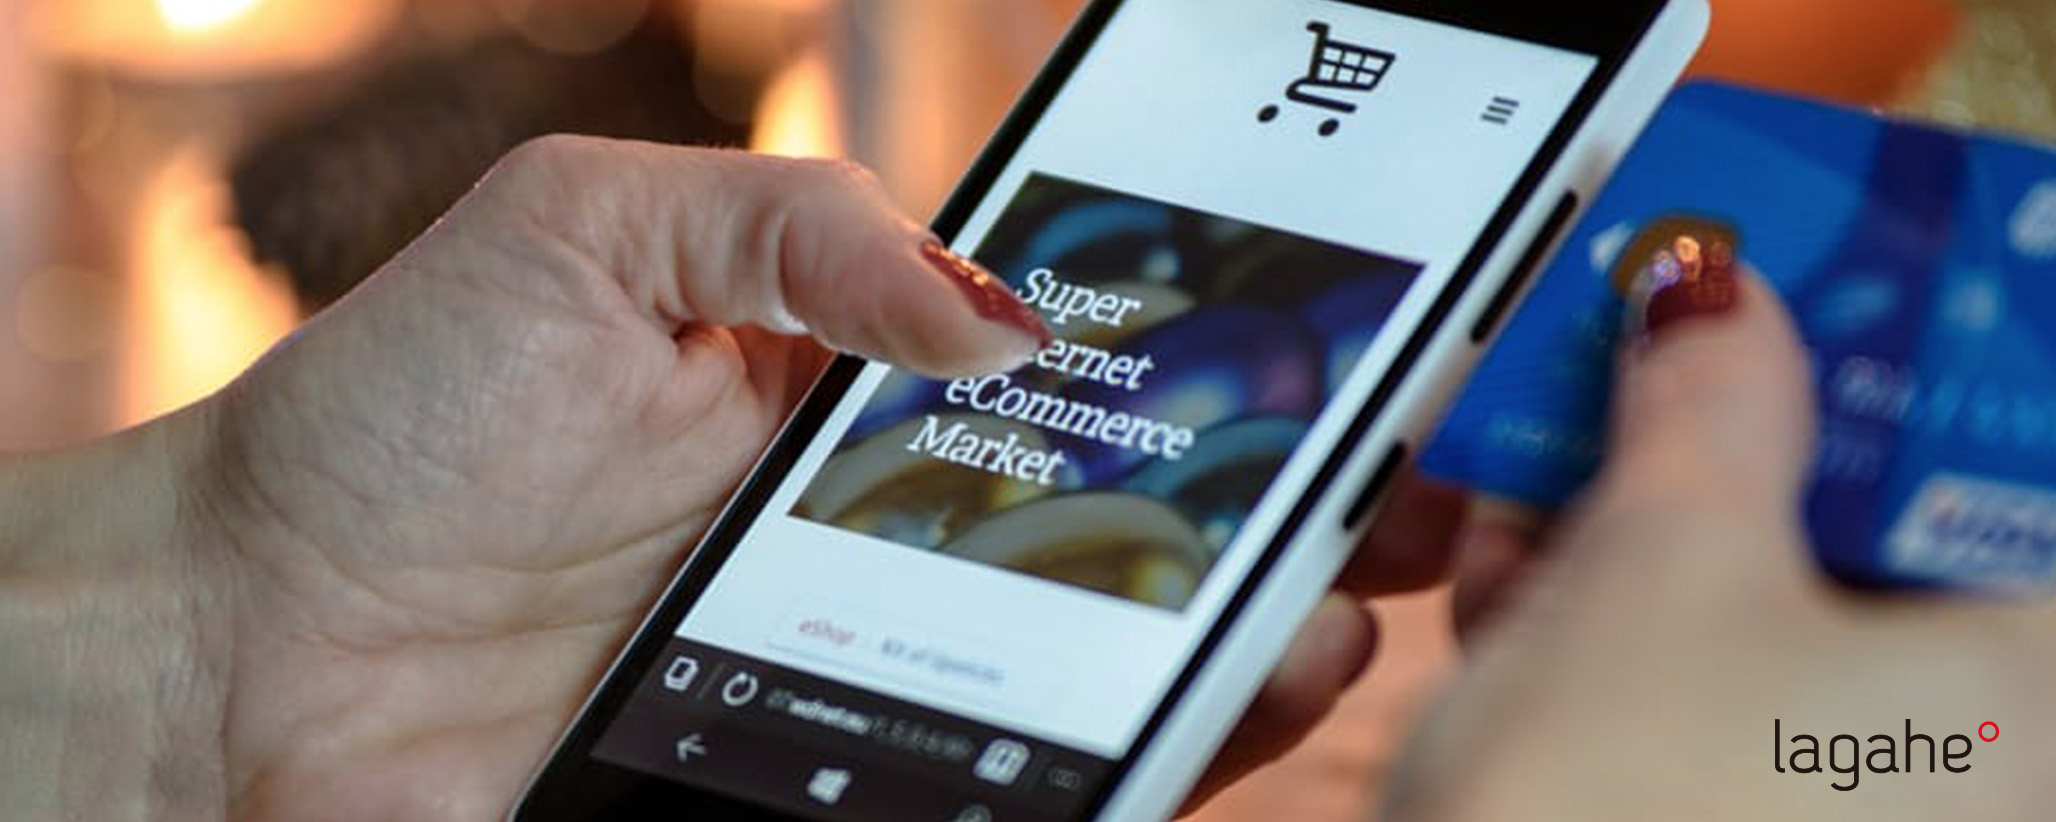 M-Commerce Lagahe